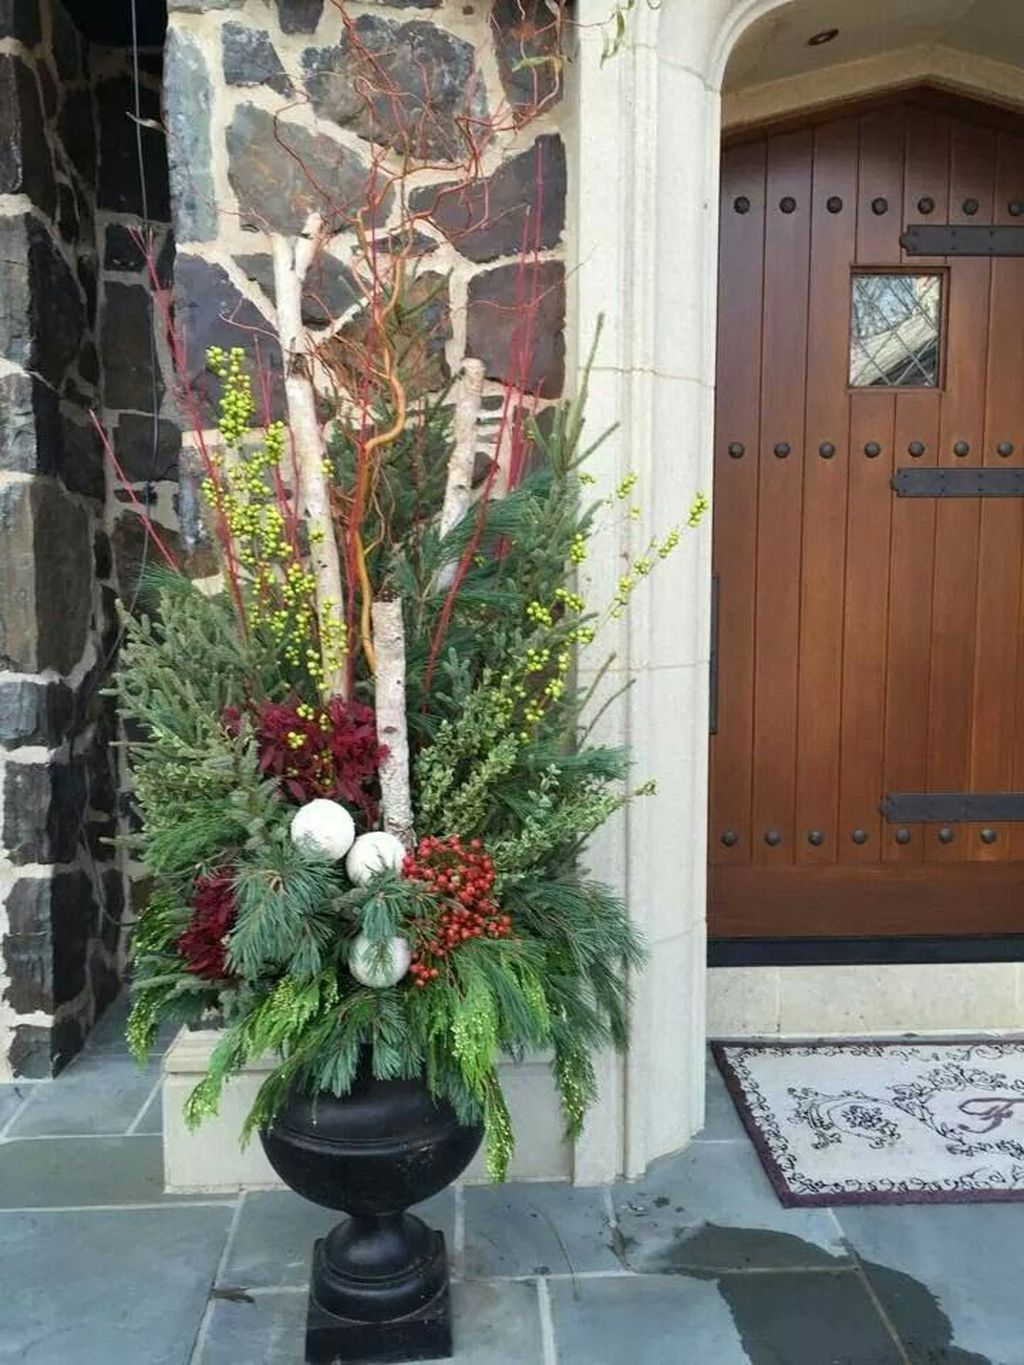 Marvelous Outdoor Holiday Planter Ideas To Beauty Porch Décor 22